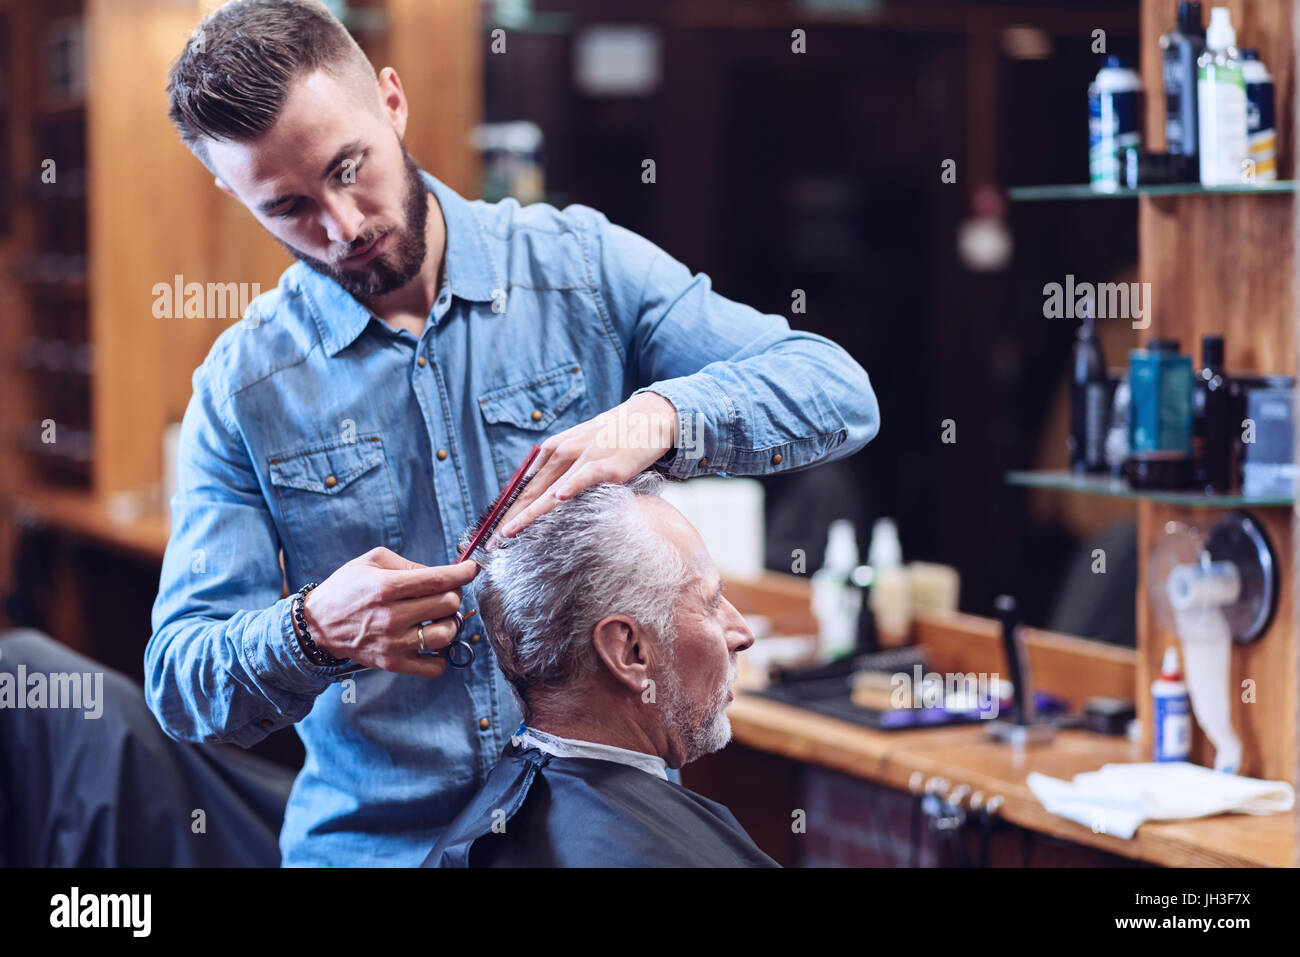 Serious professional hairdresser being involved in his job - Stock Image